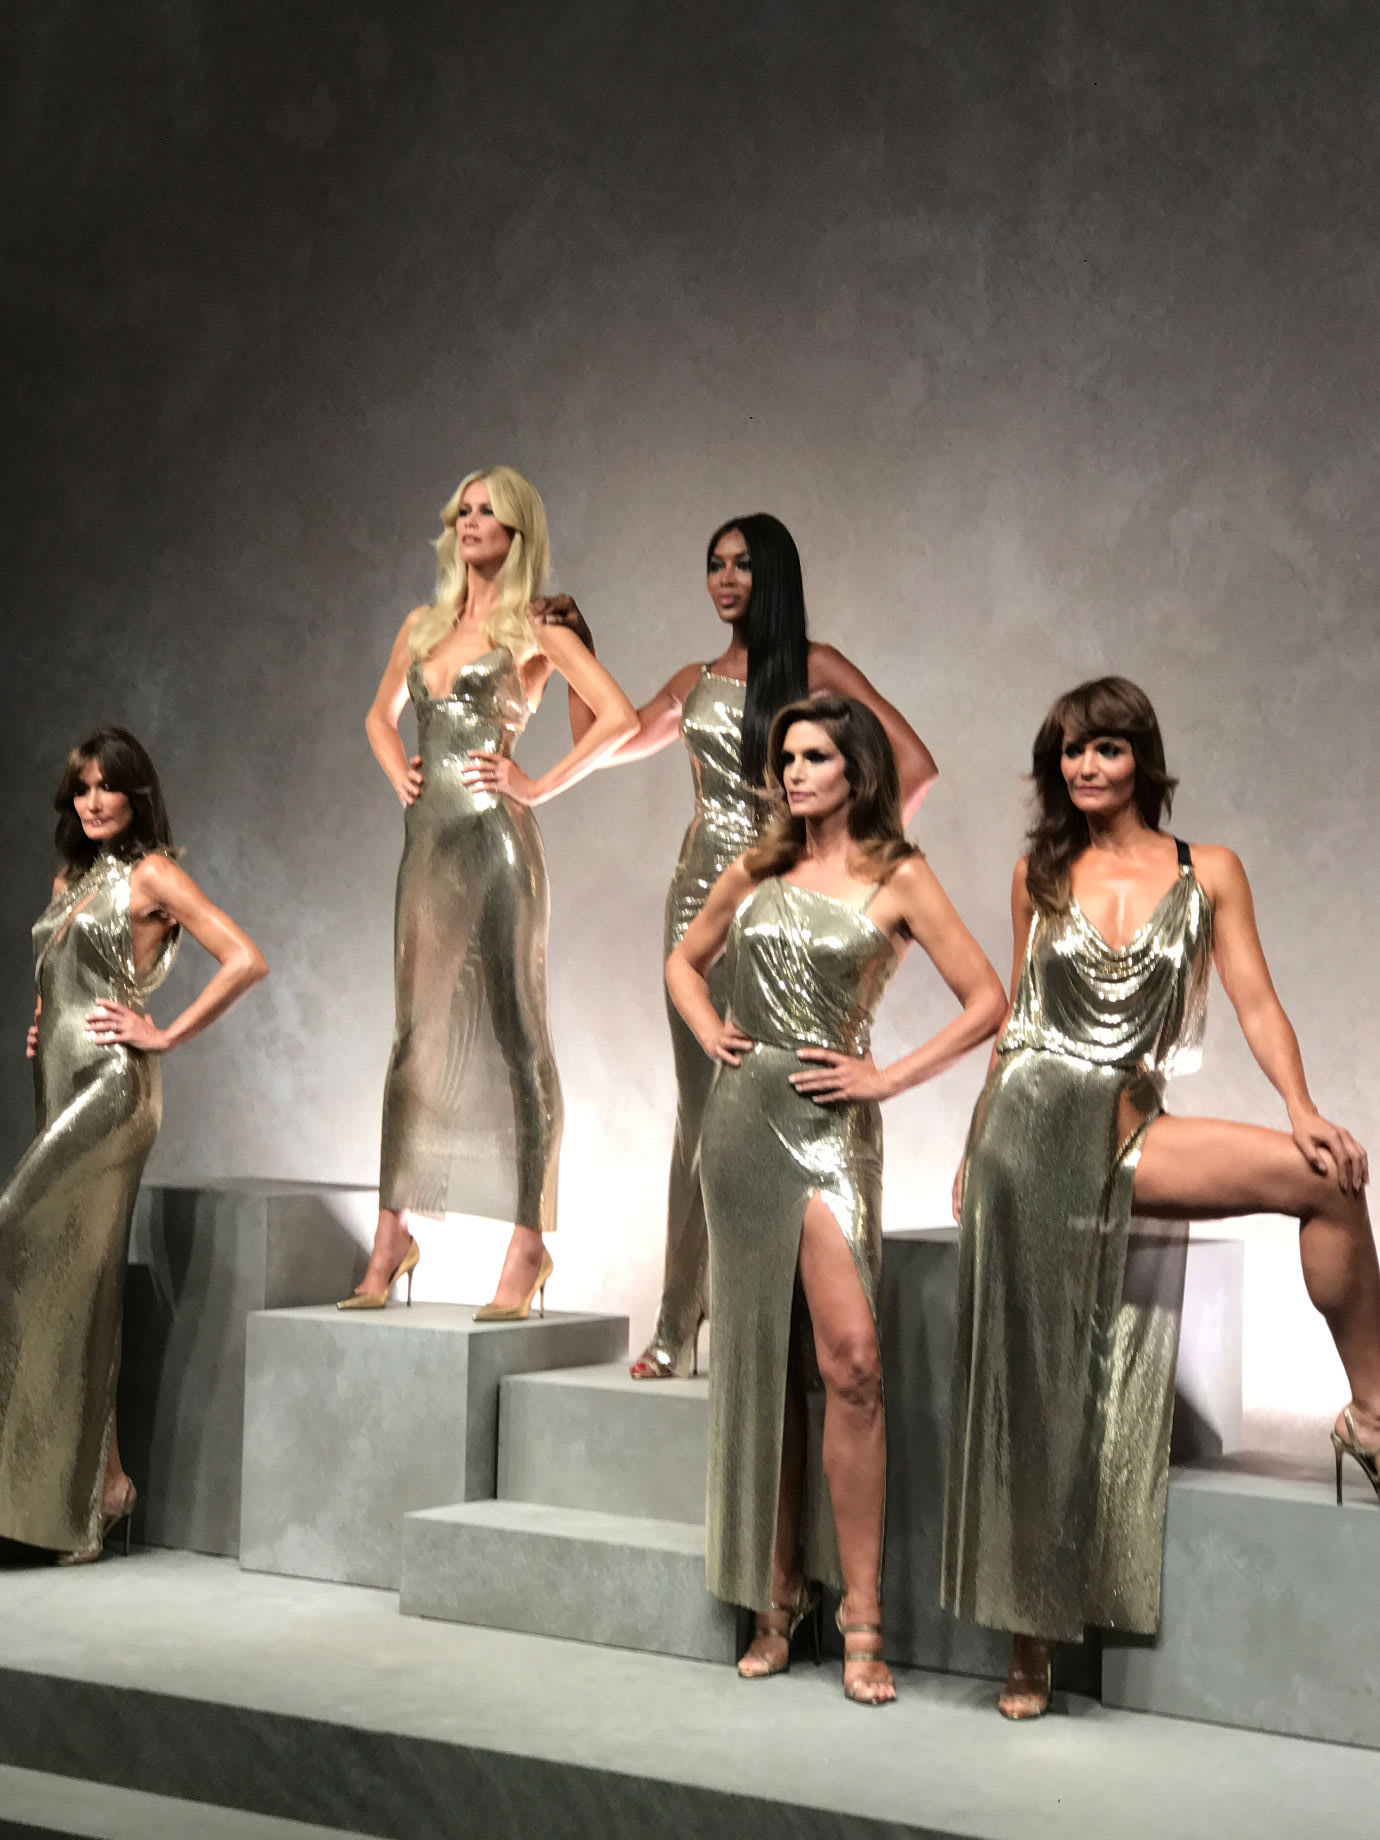 Five models standing on a stage.